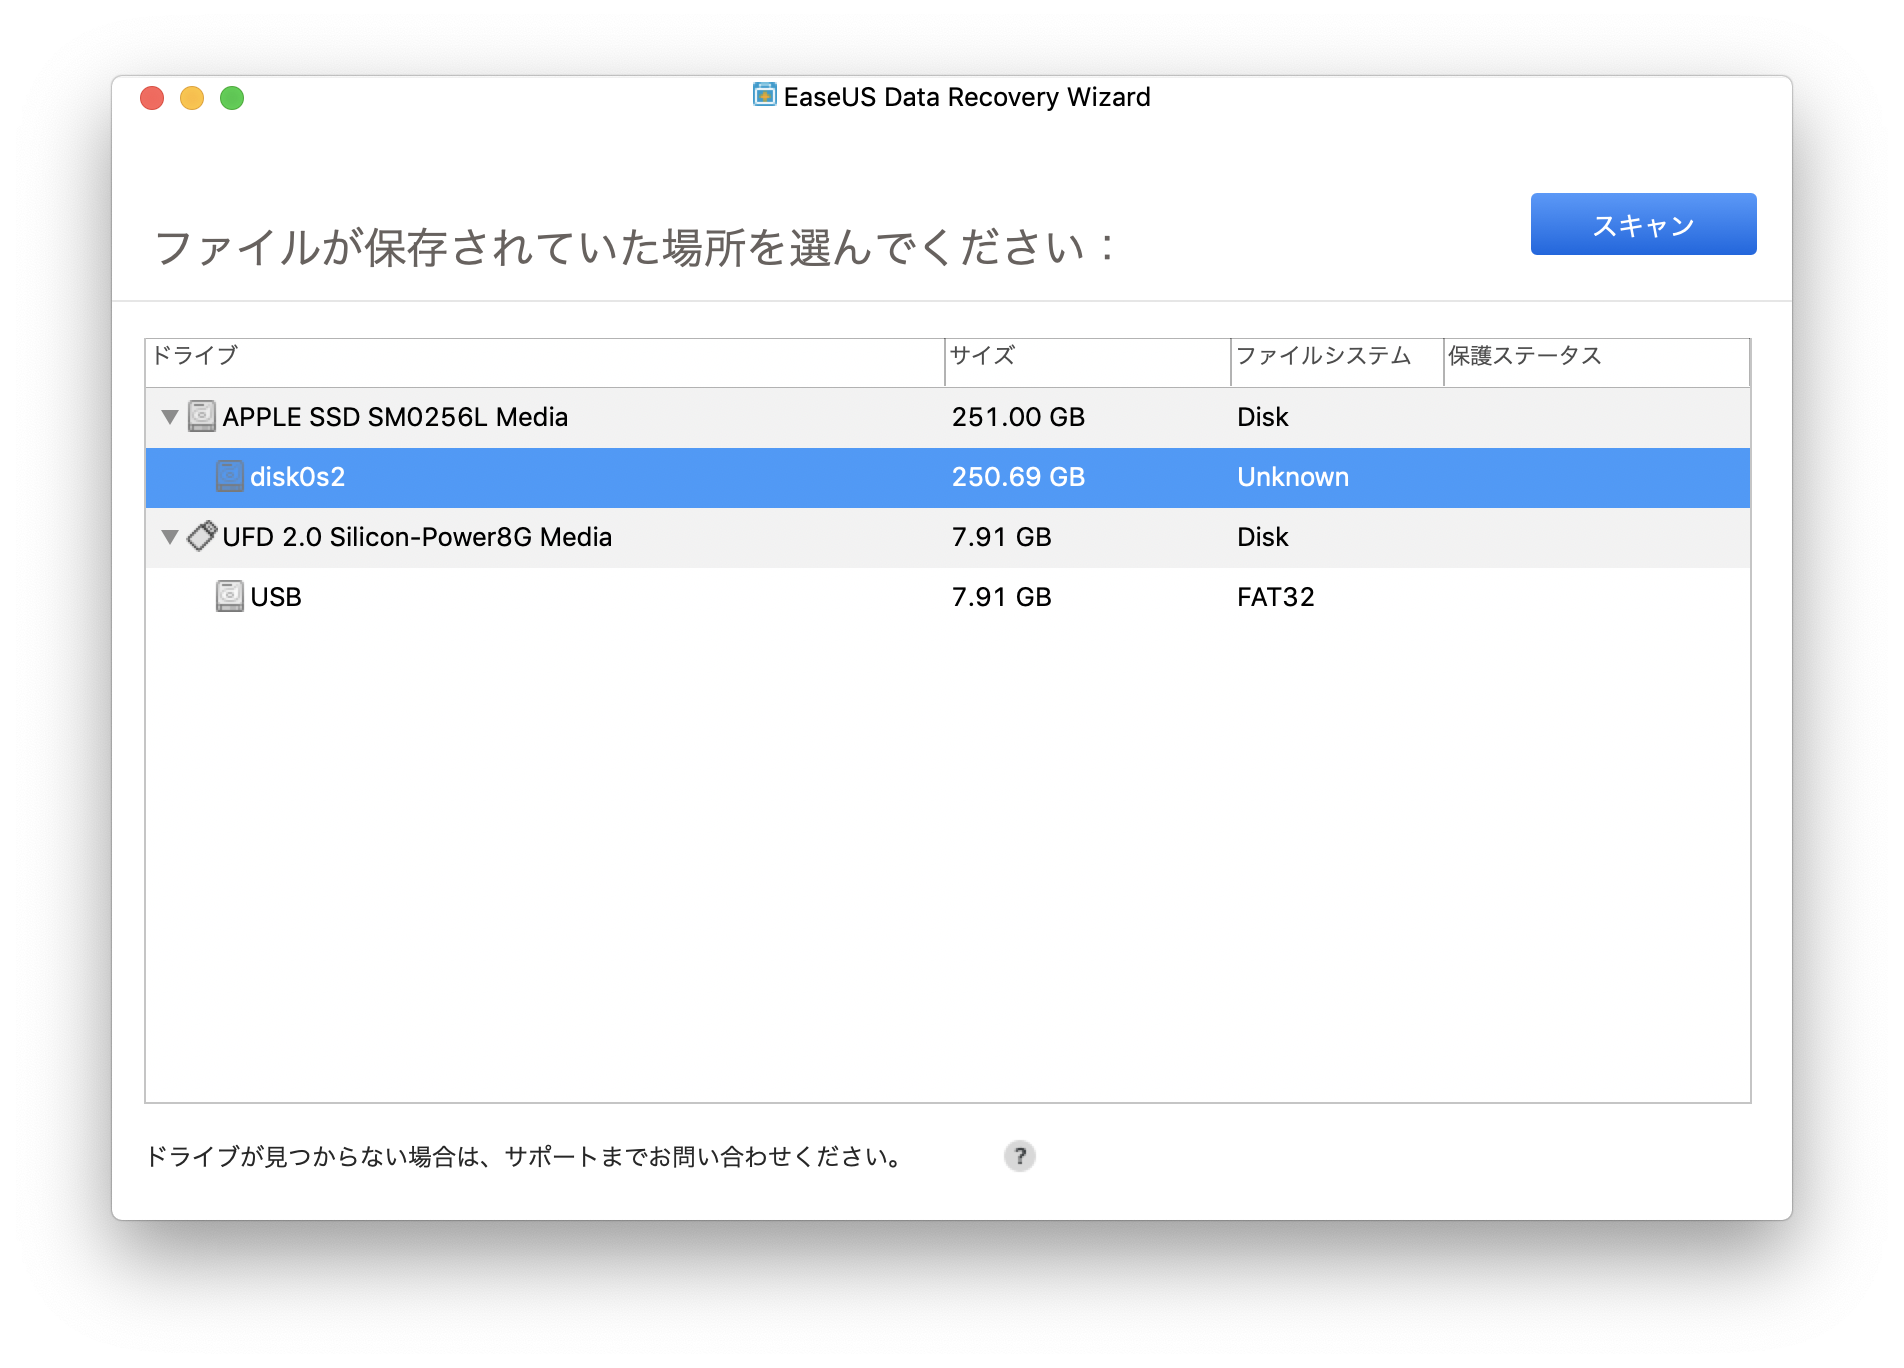 EaseUS Data Recovery Wizardを起動する